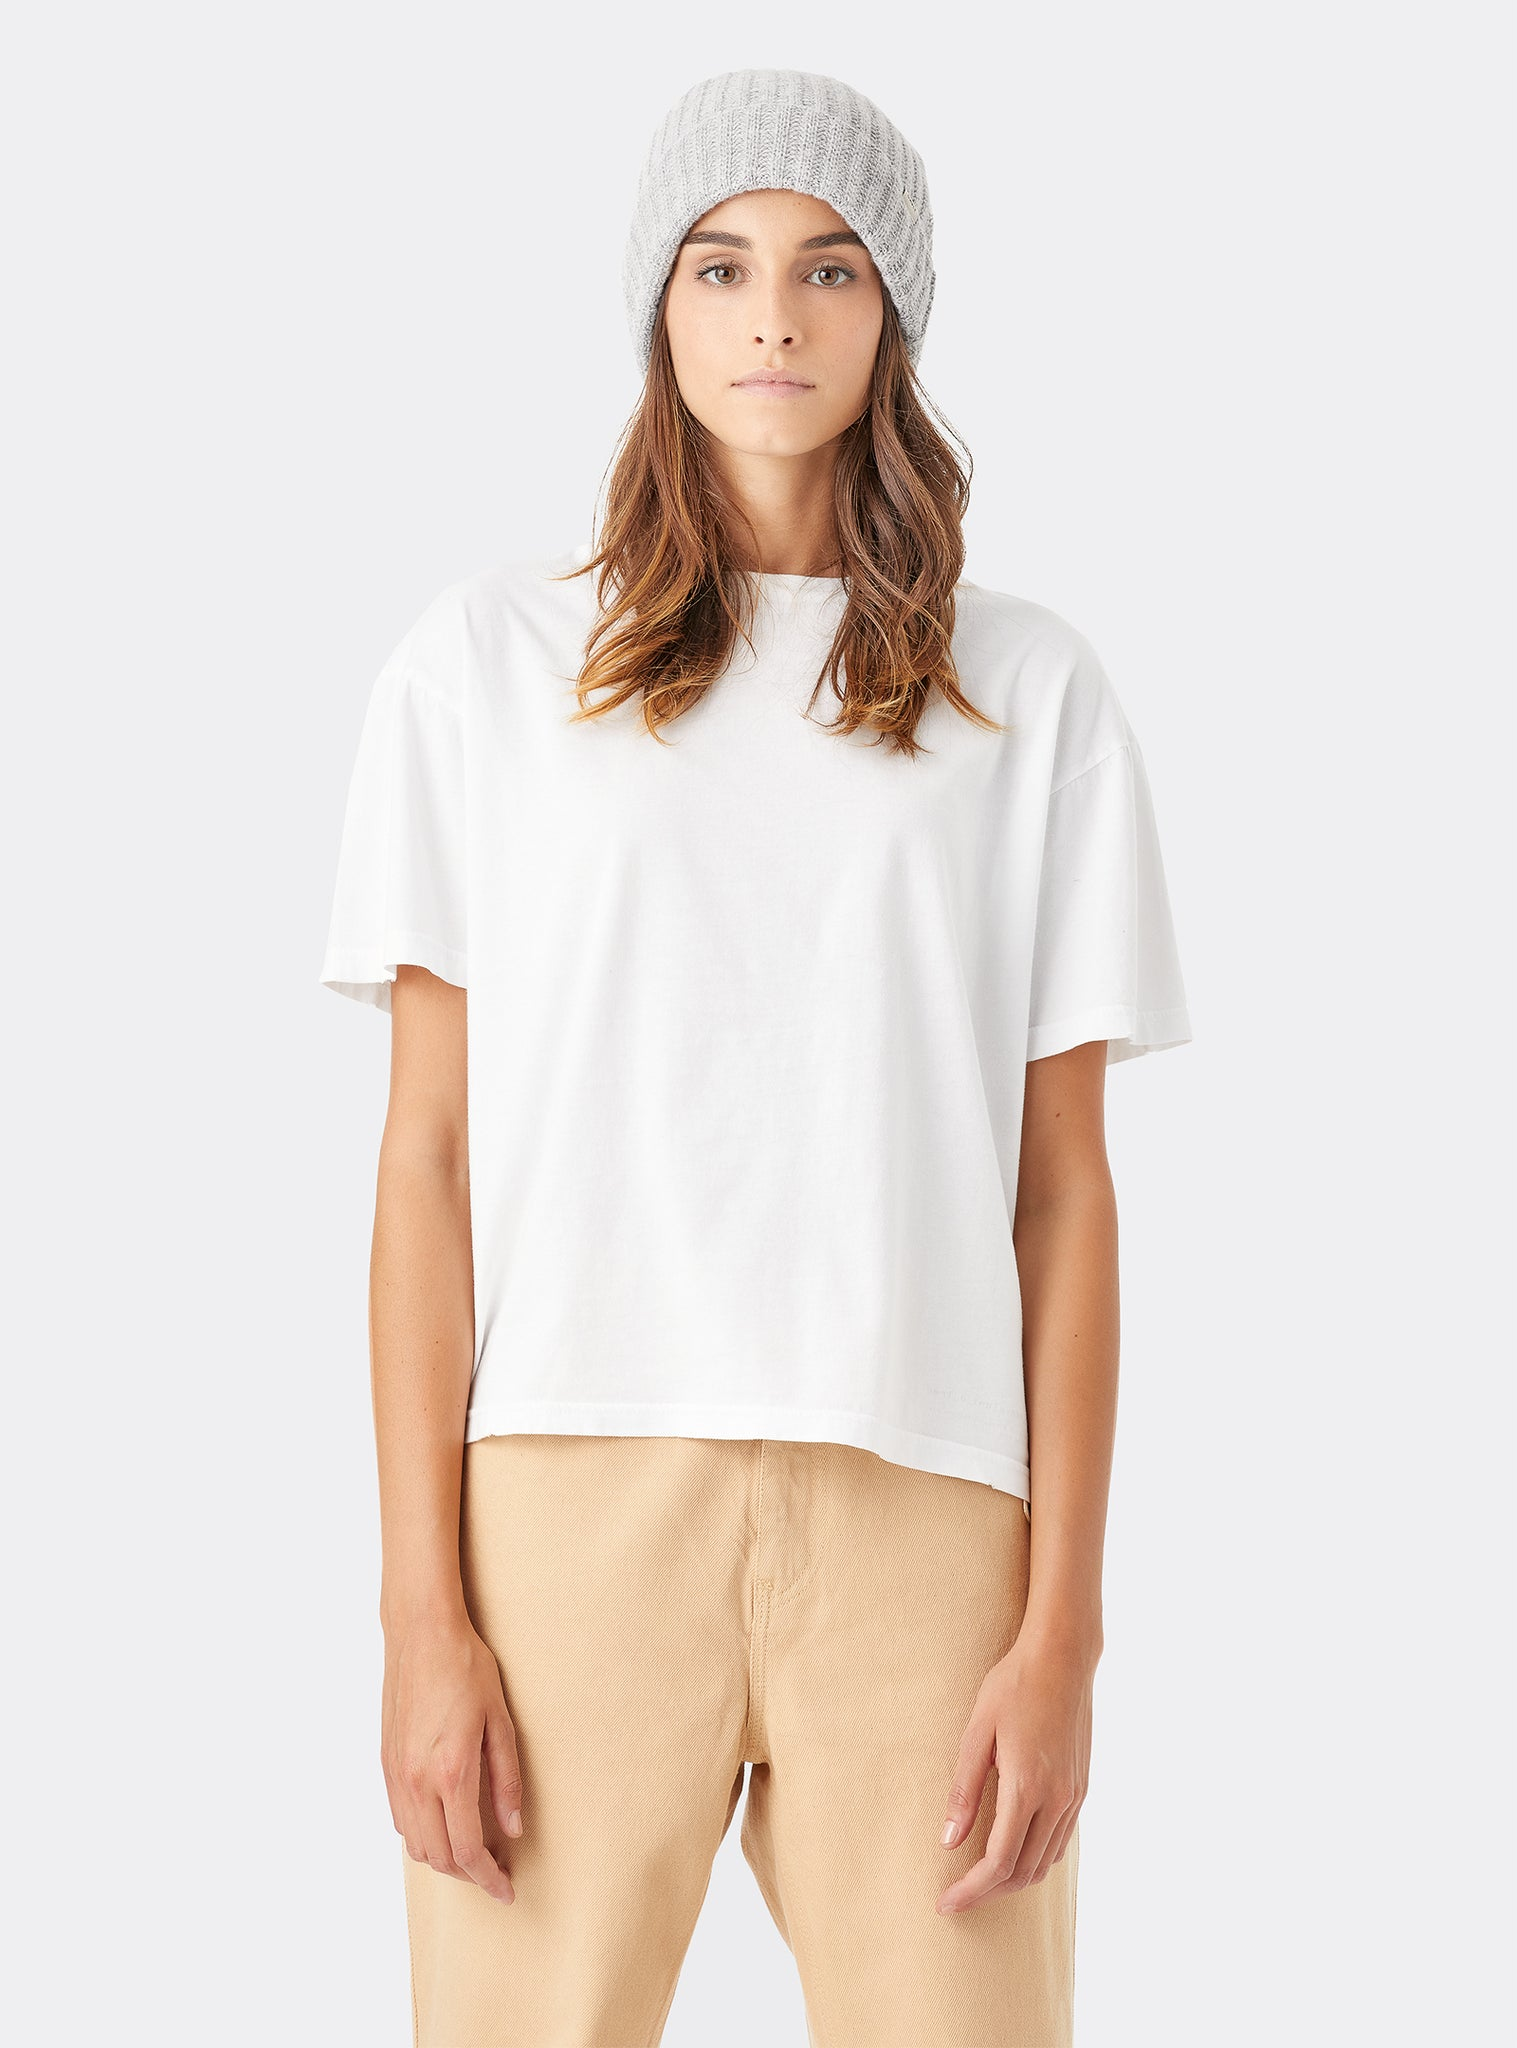 Look I T-shirt Manches Courtes Blanc